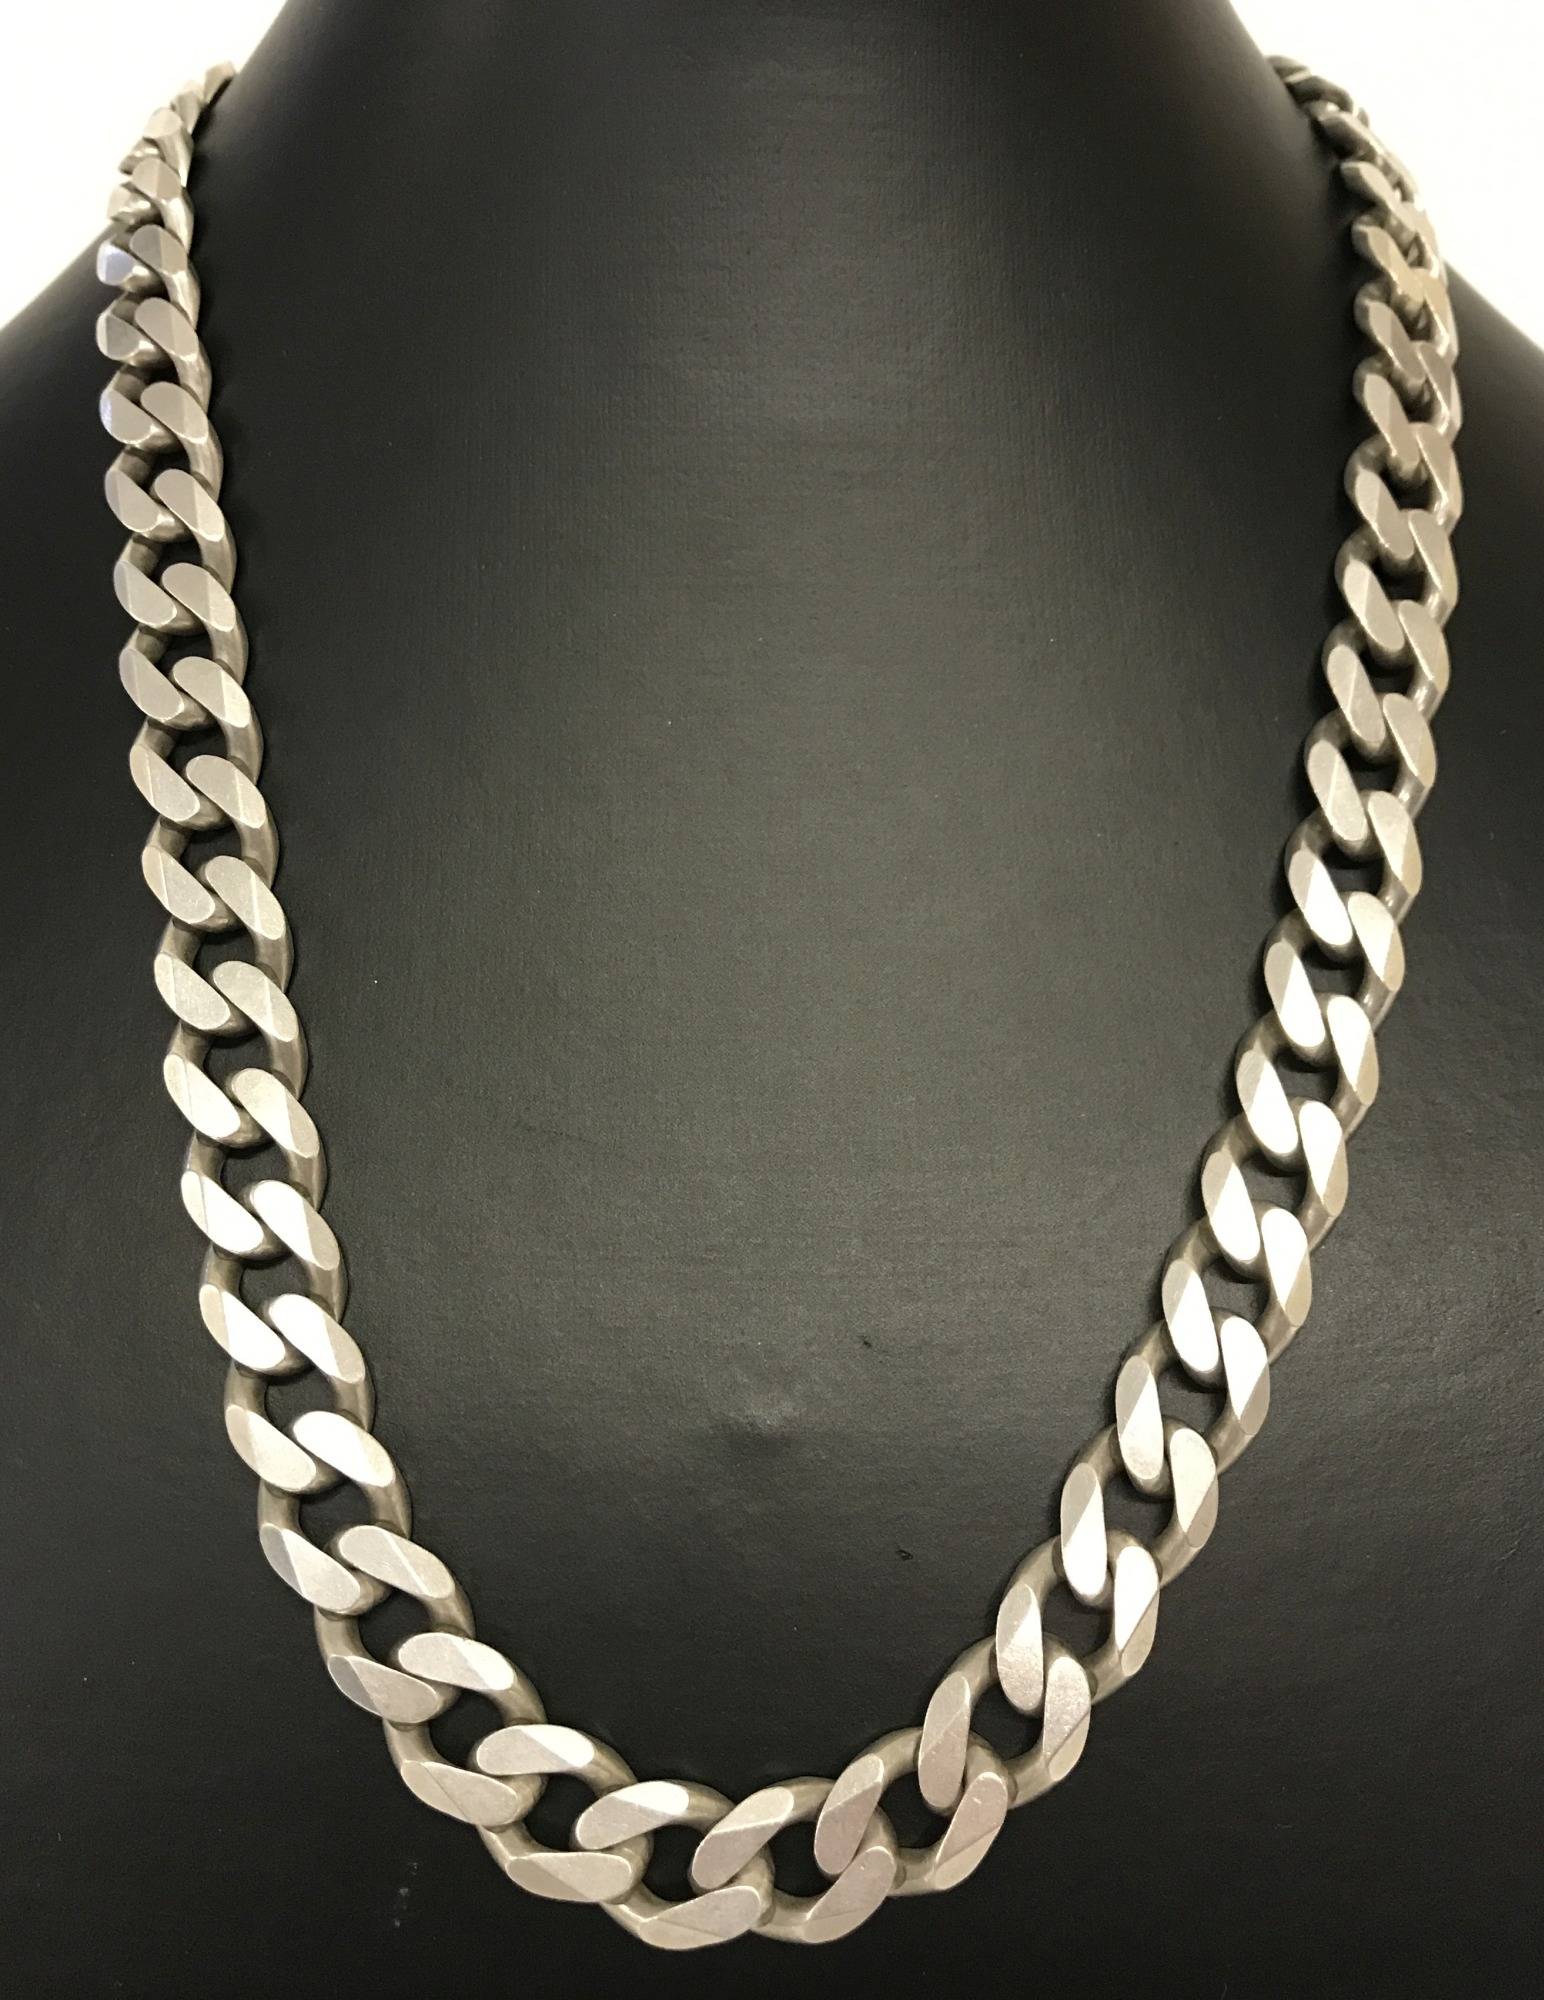 Lot 45 - A heavy curb chain necklace with lobster clasp.